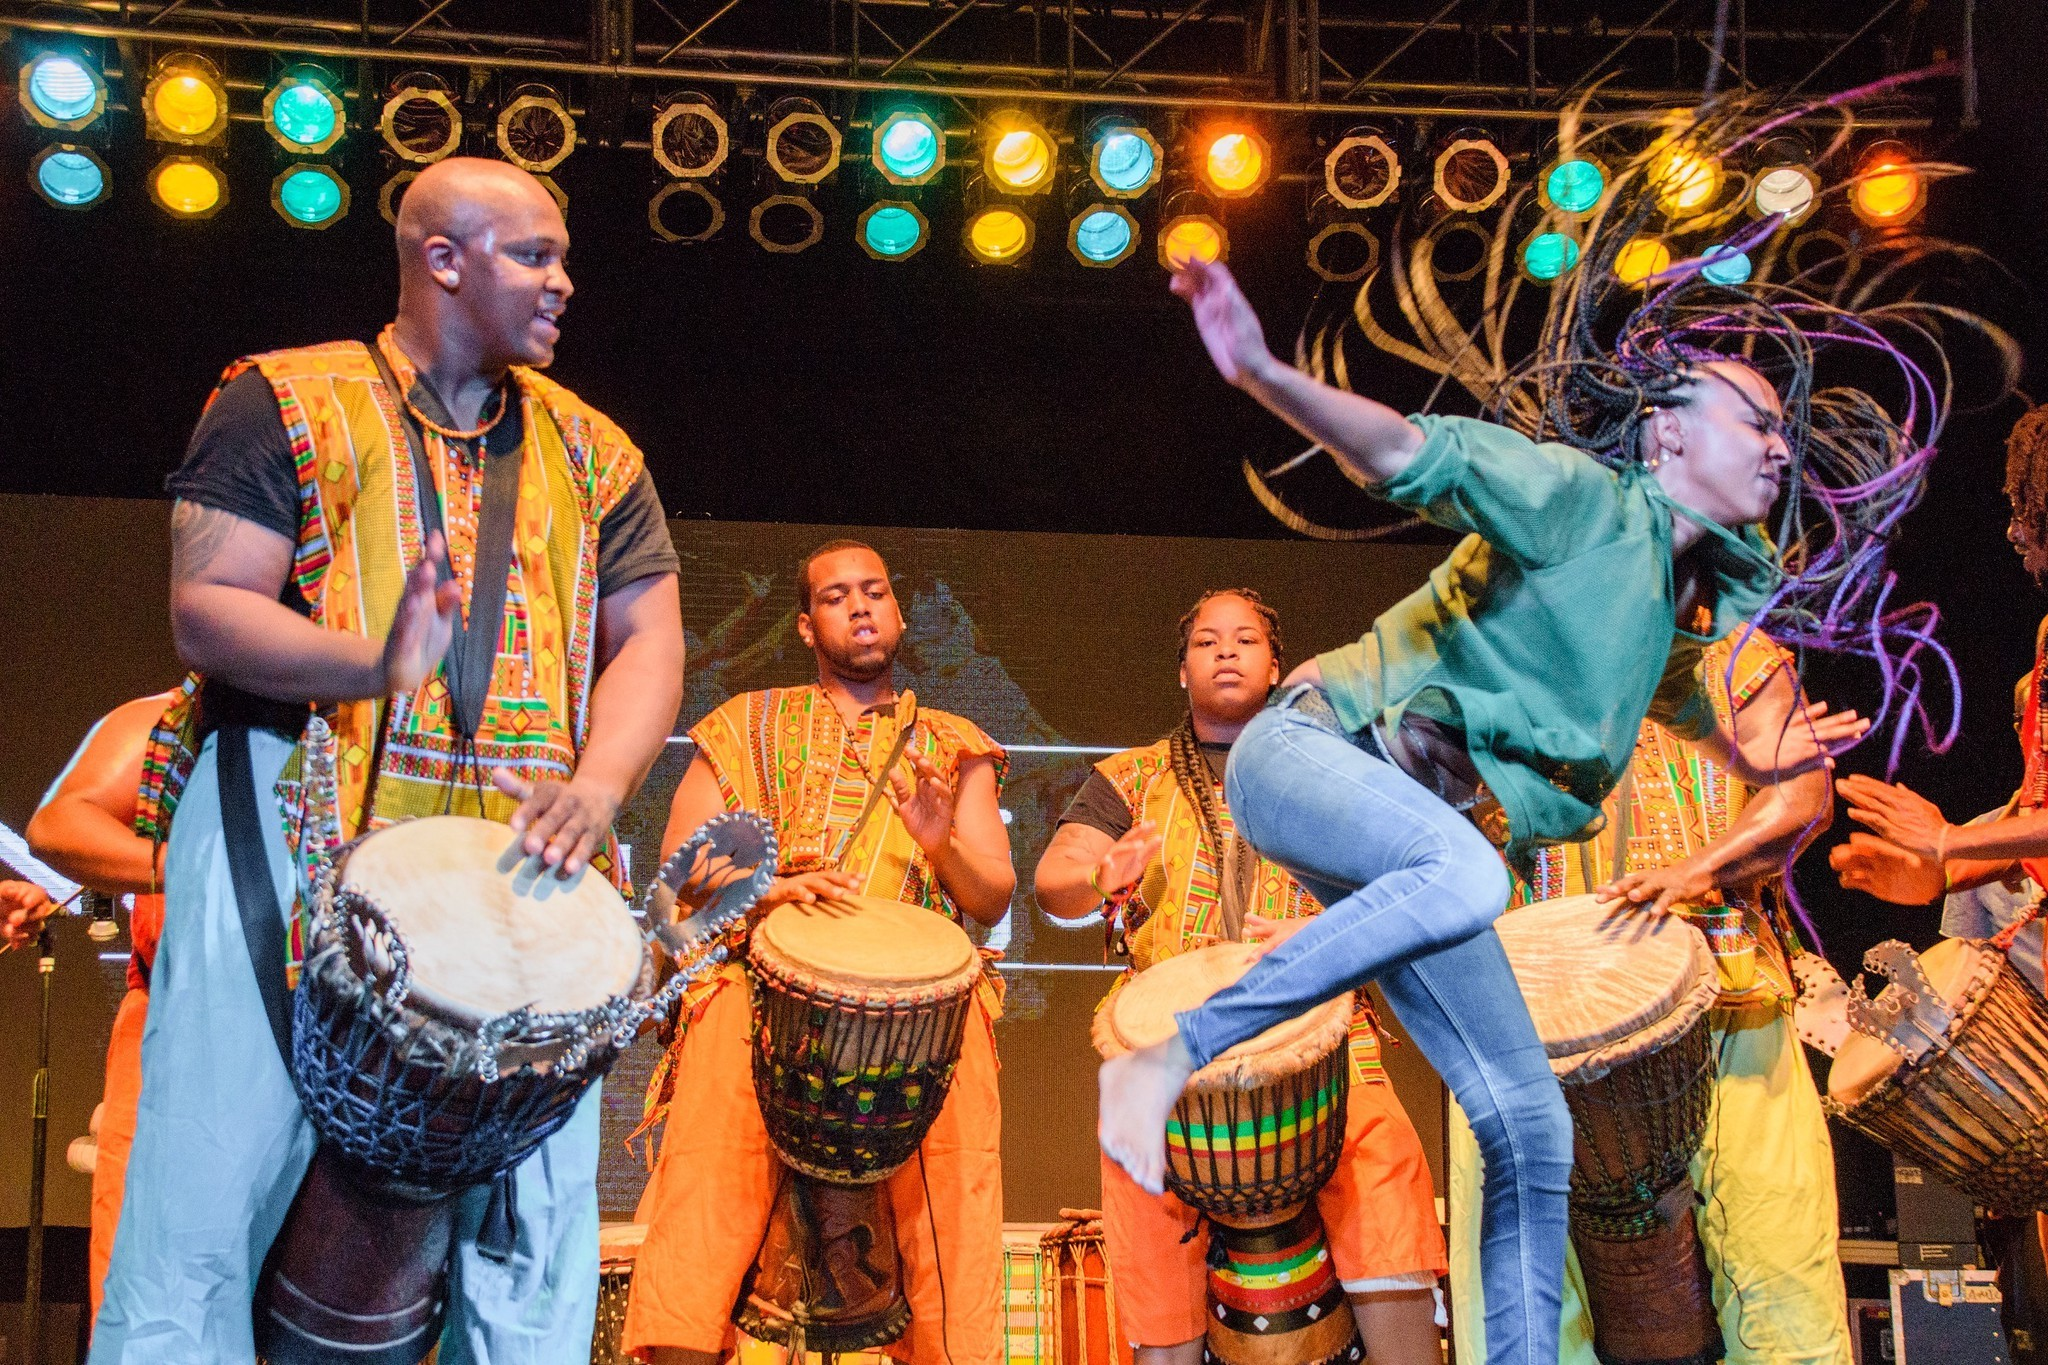 37th annual African World Festival returns to Detroit for free 3-day celebration